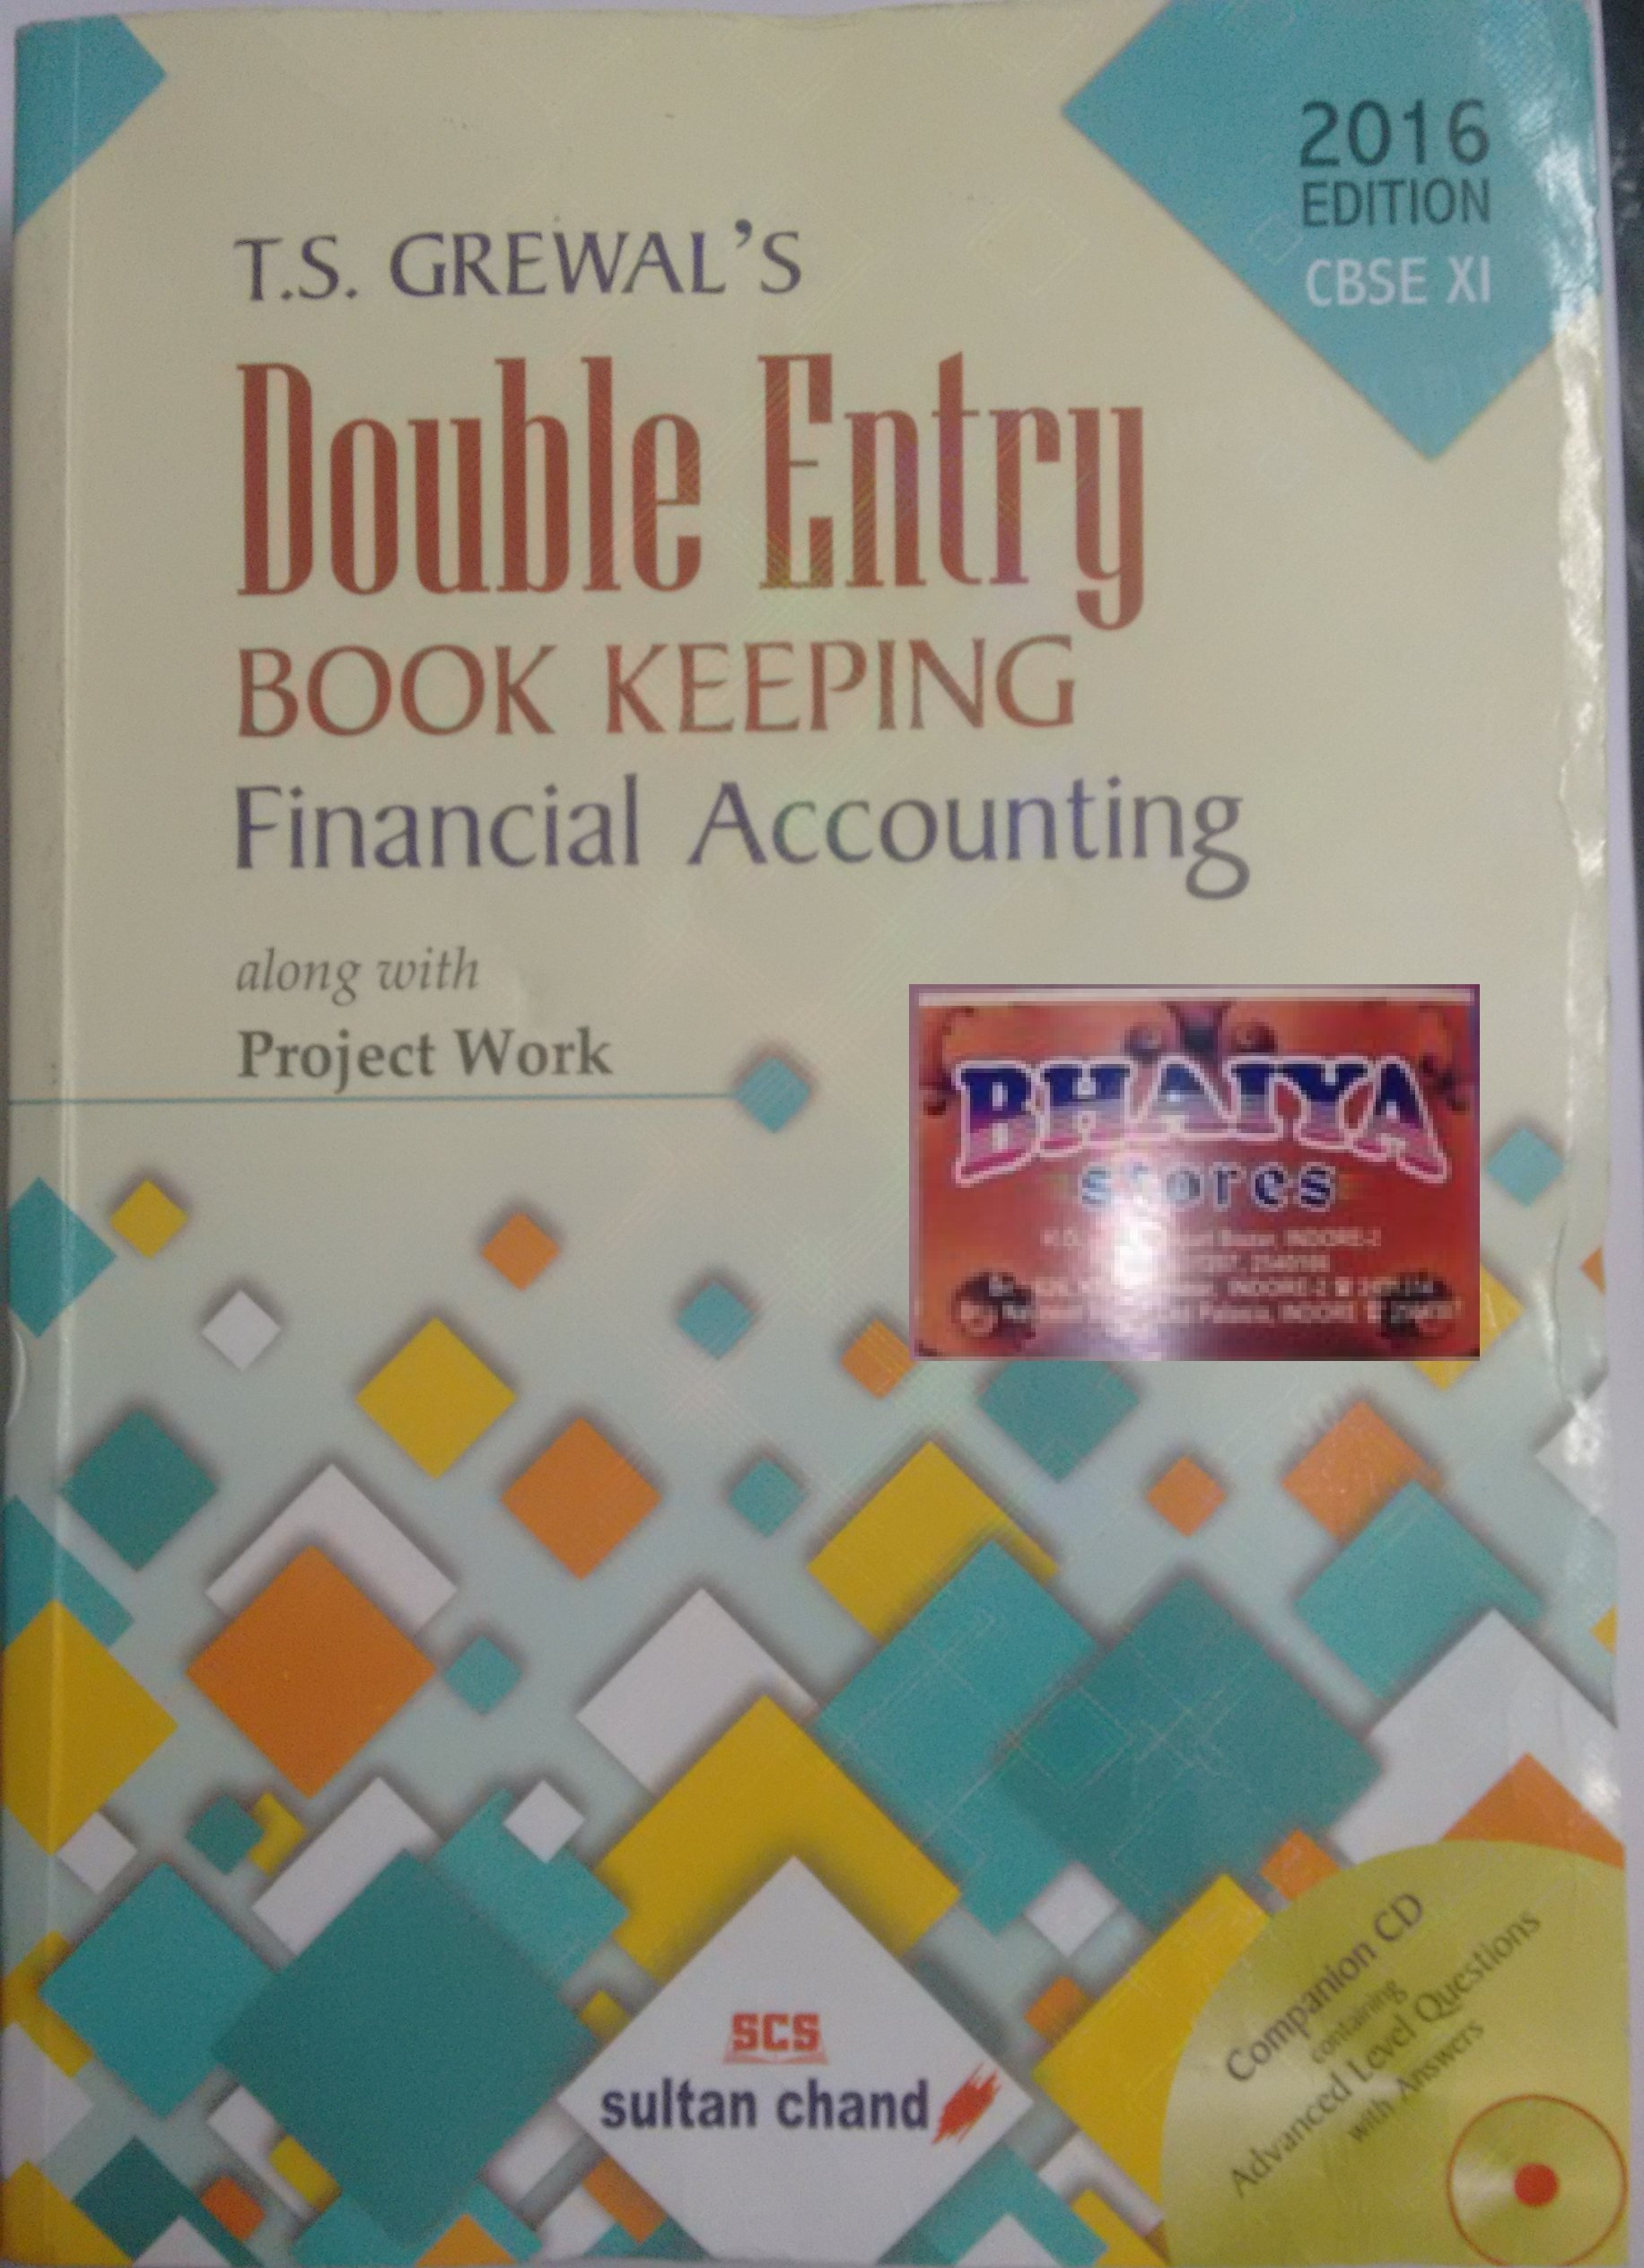 T.S. Grewal's Double Entry Book Keeping: Financial Accounting - Class 11:  Amazon.in: T.S. Grewal: Books